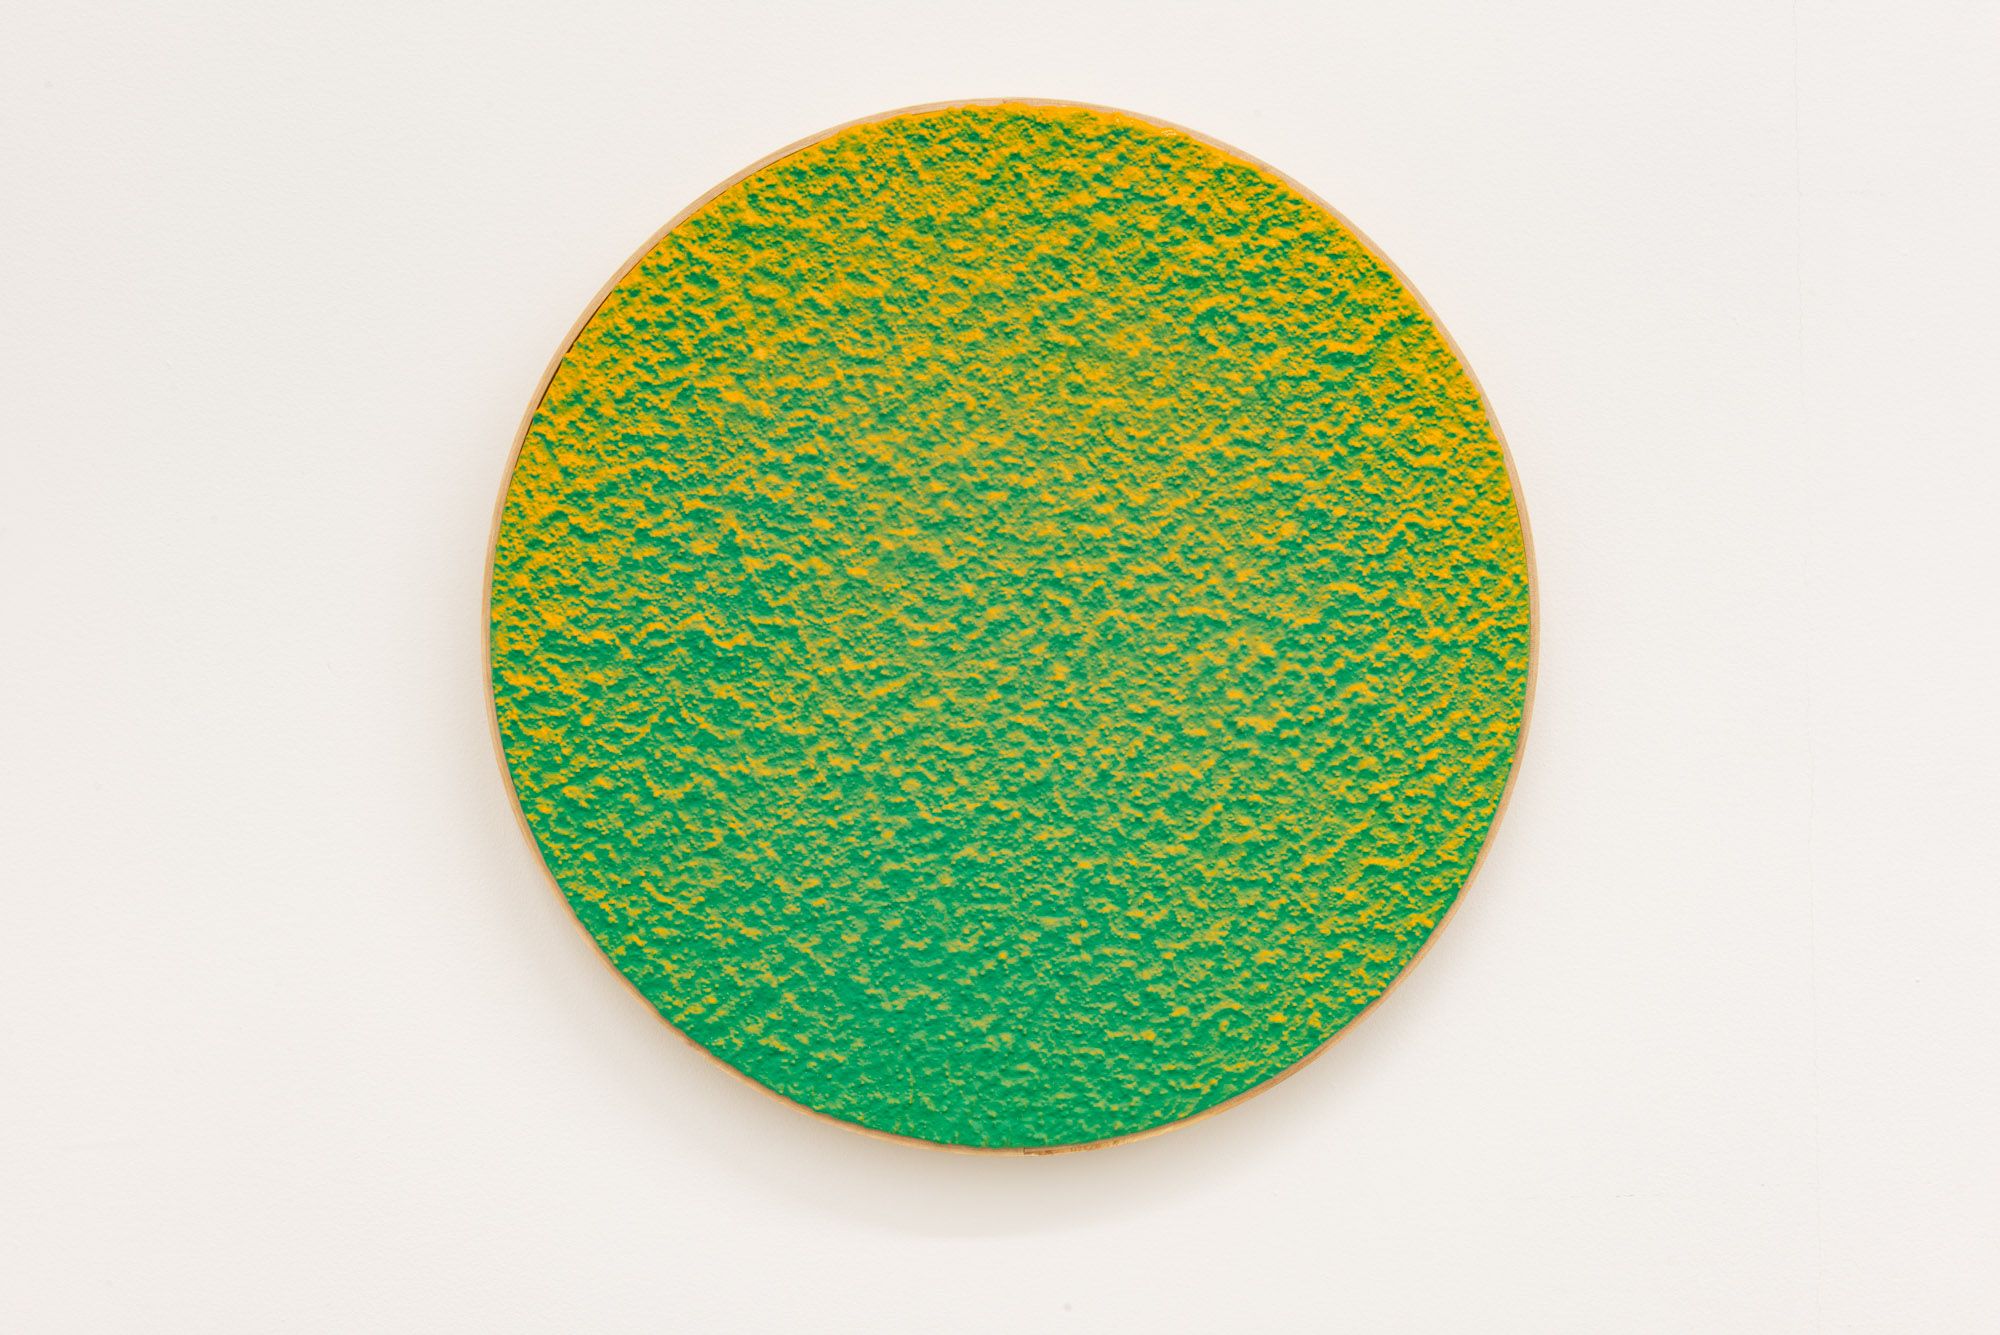 """Pierre Julien,  In the Deepest Oceans  - B006, 2018, stucco, acrylic and spray paint on wood panel, 16"""" diameter (41 cm)"""